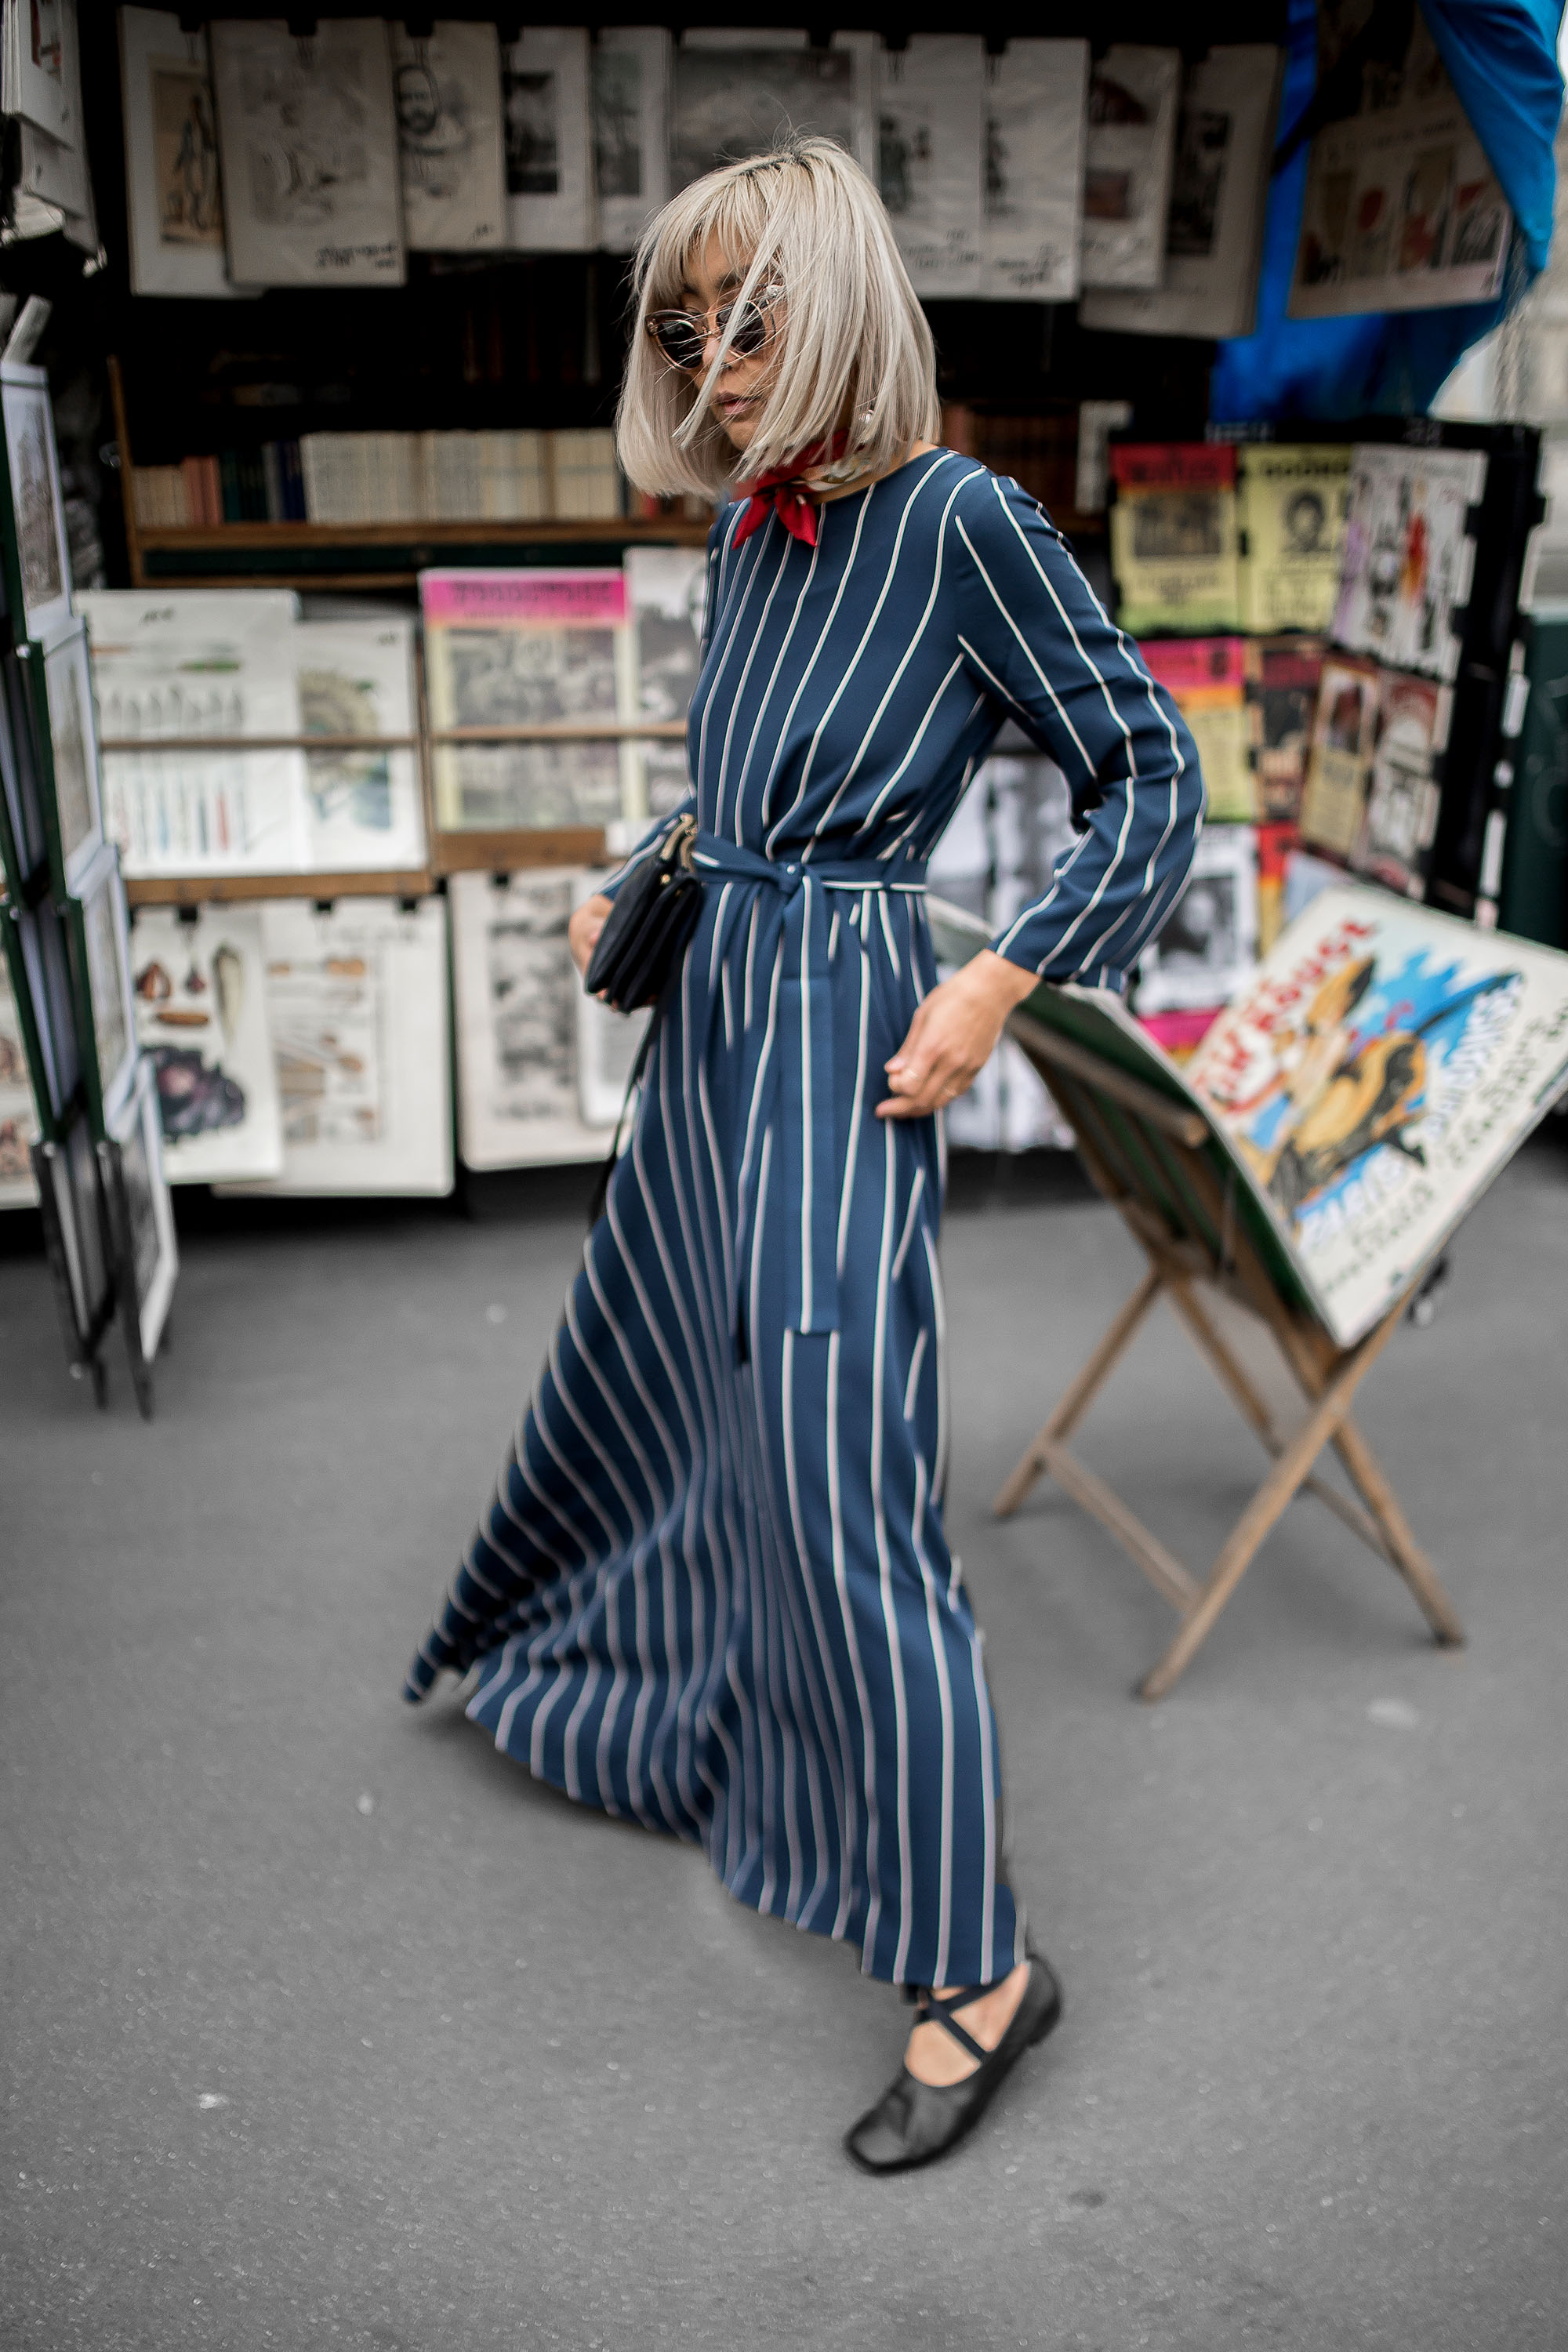 6caa88d9512 Uniqlo Hana Tajima Stripe Maxi Dress Ballerina Flat JW Anderson Earrings  Celine Sunglasses Outift Inspiration Beige Renegade-7695